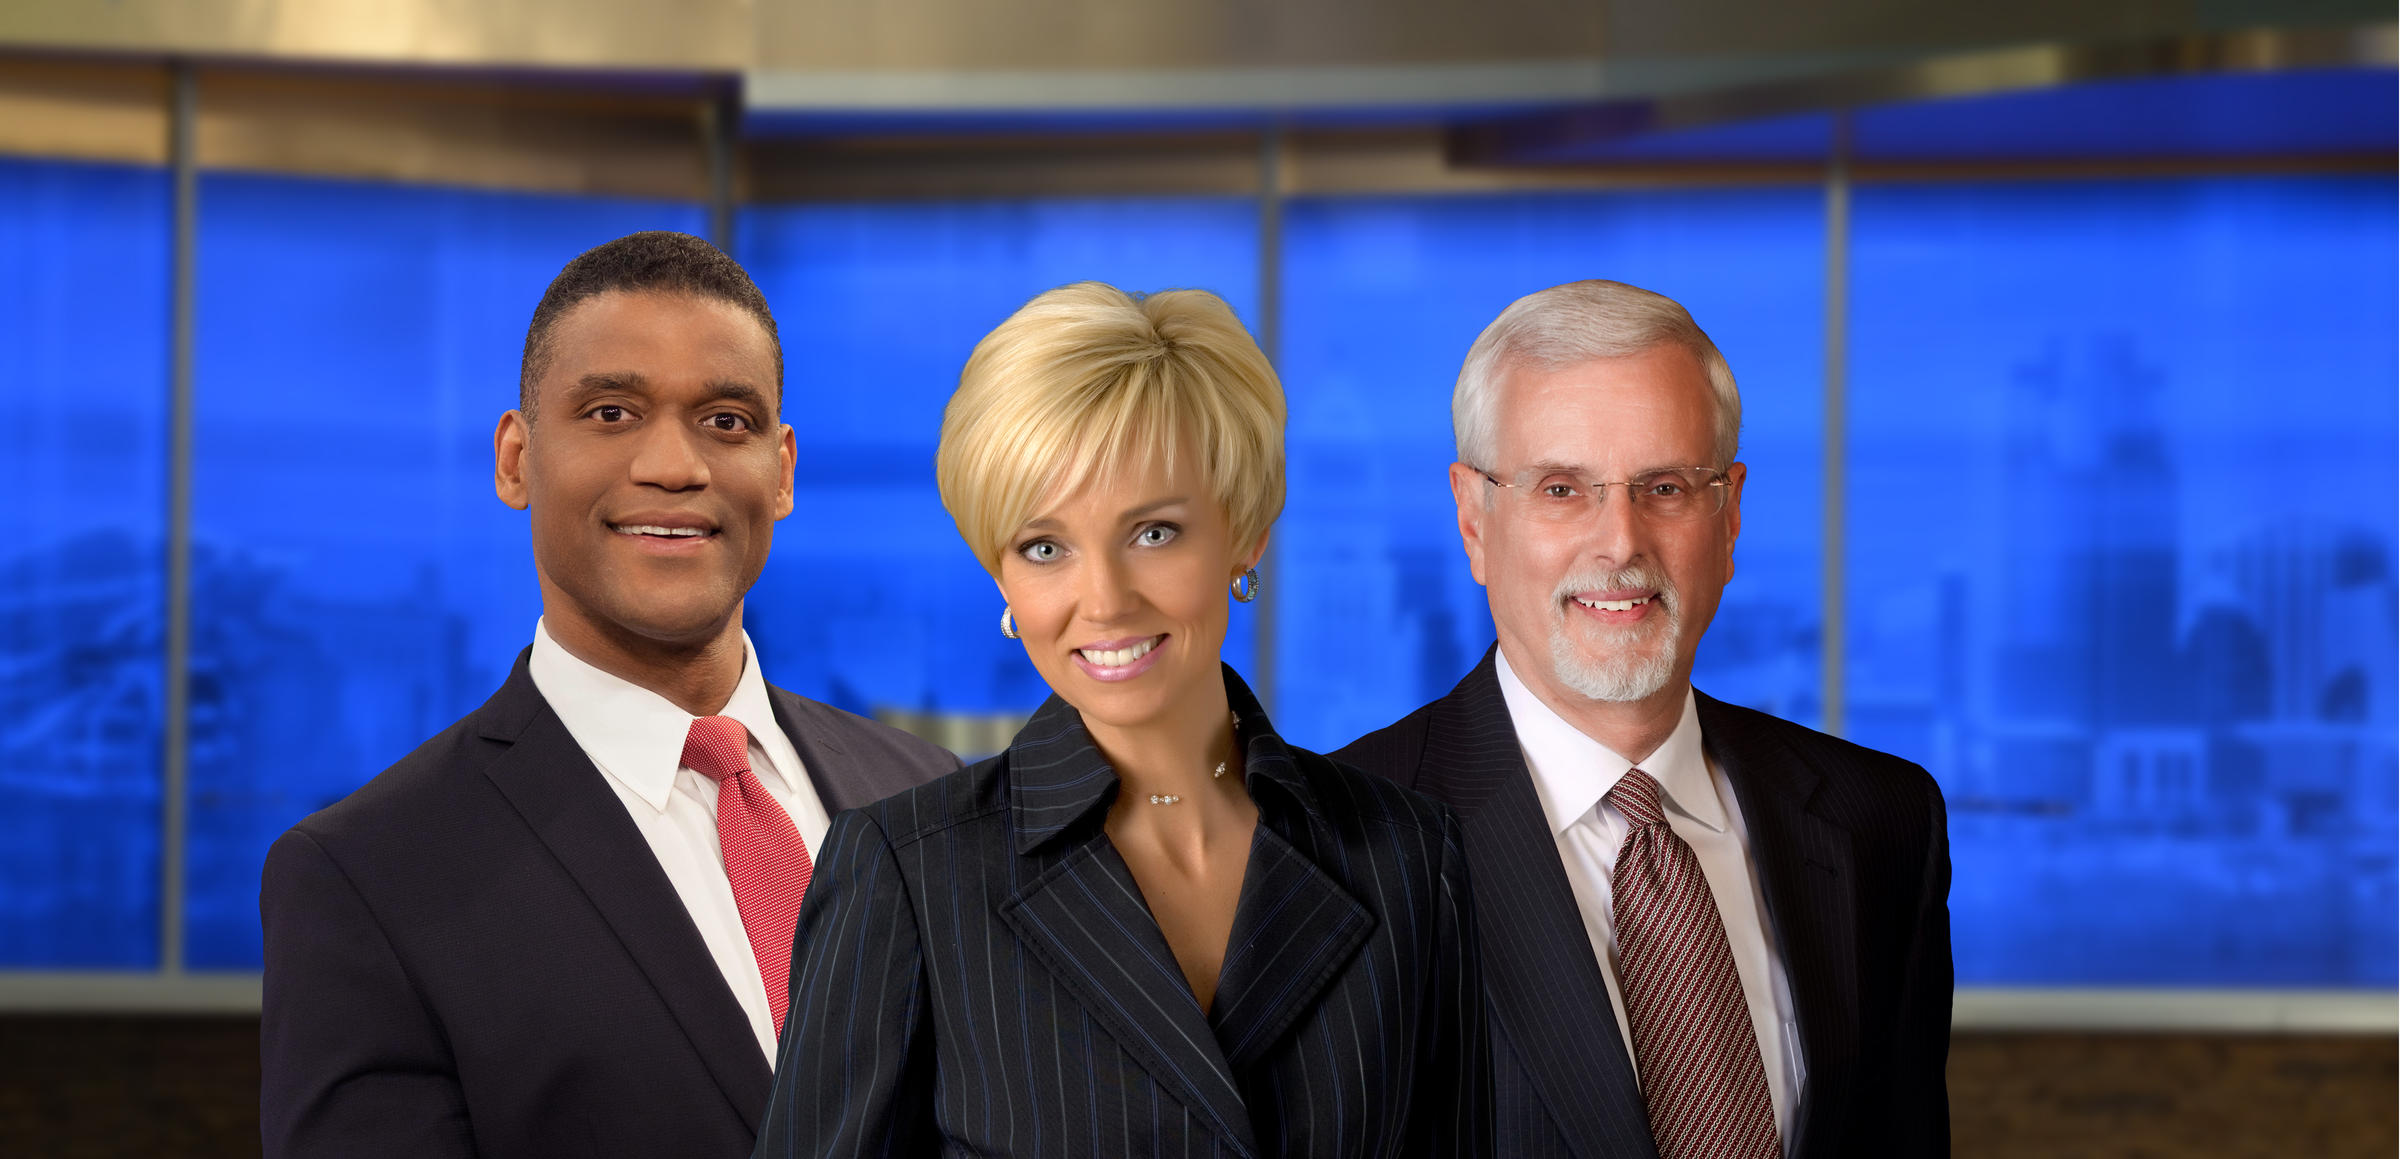 Rob Williams Named Fox 19 Evening Co-Anchor | WVXU